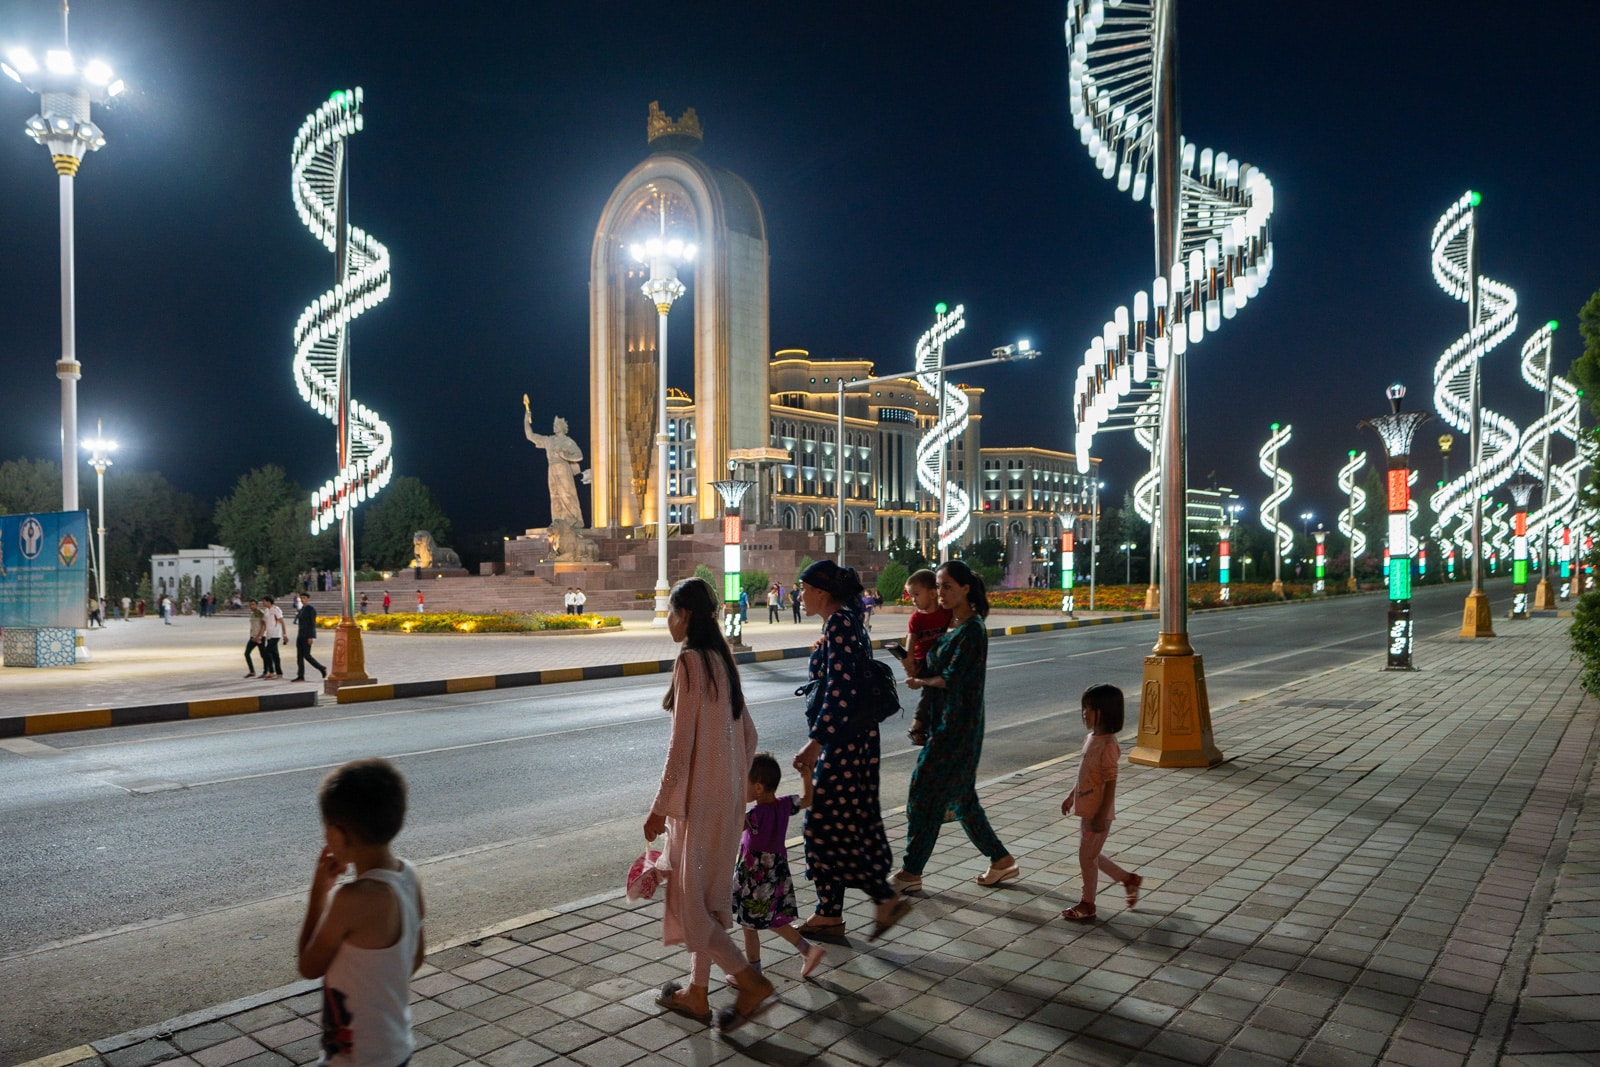 Women walking Dushanbe, Tajikistan's streets at night near the Somoni monument